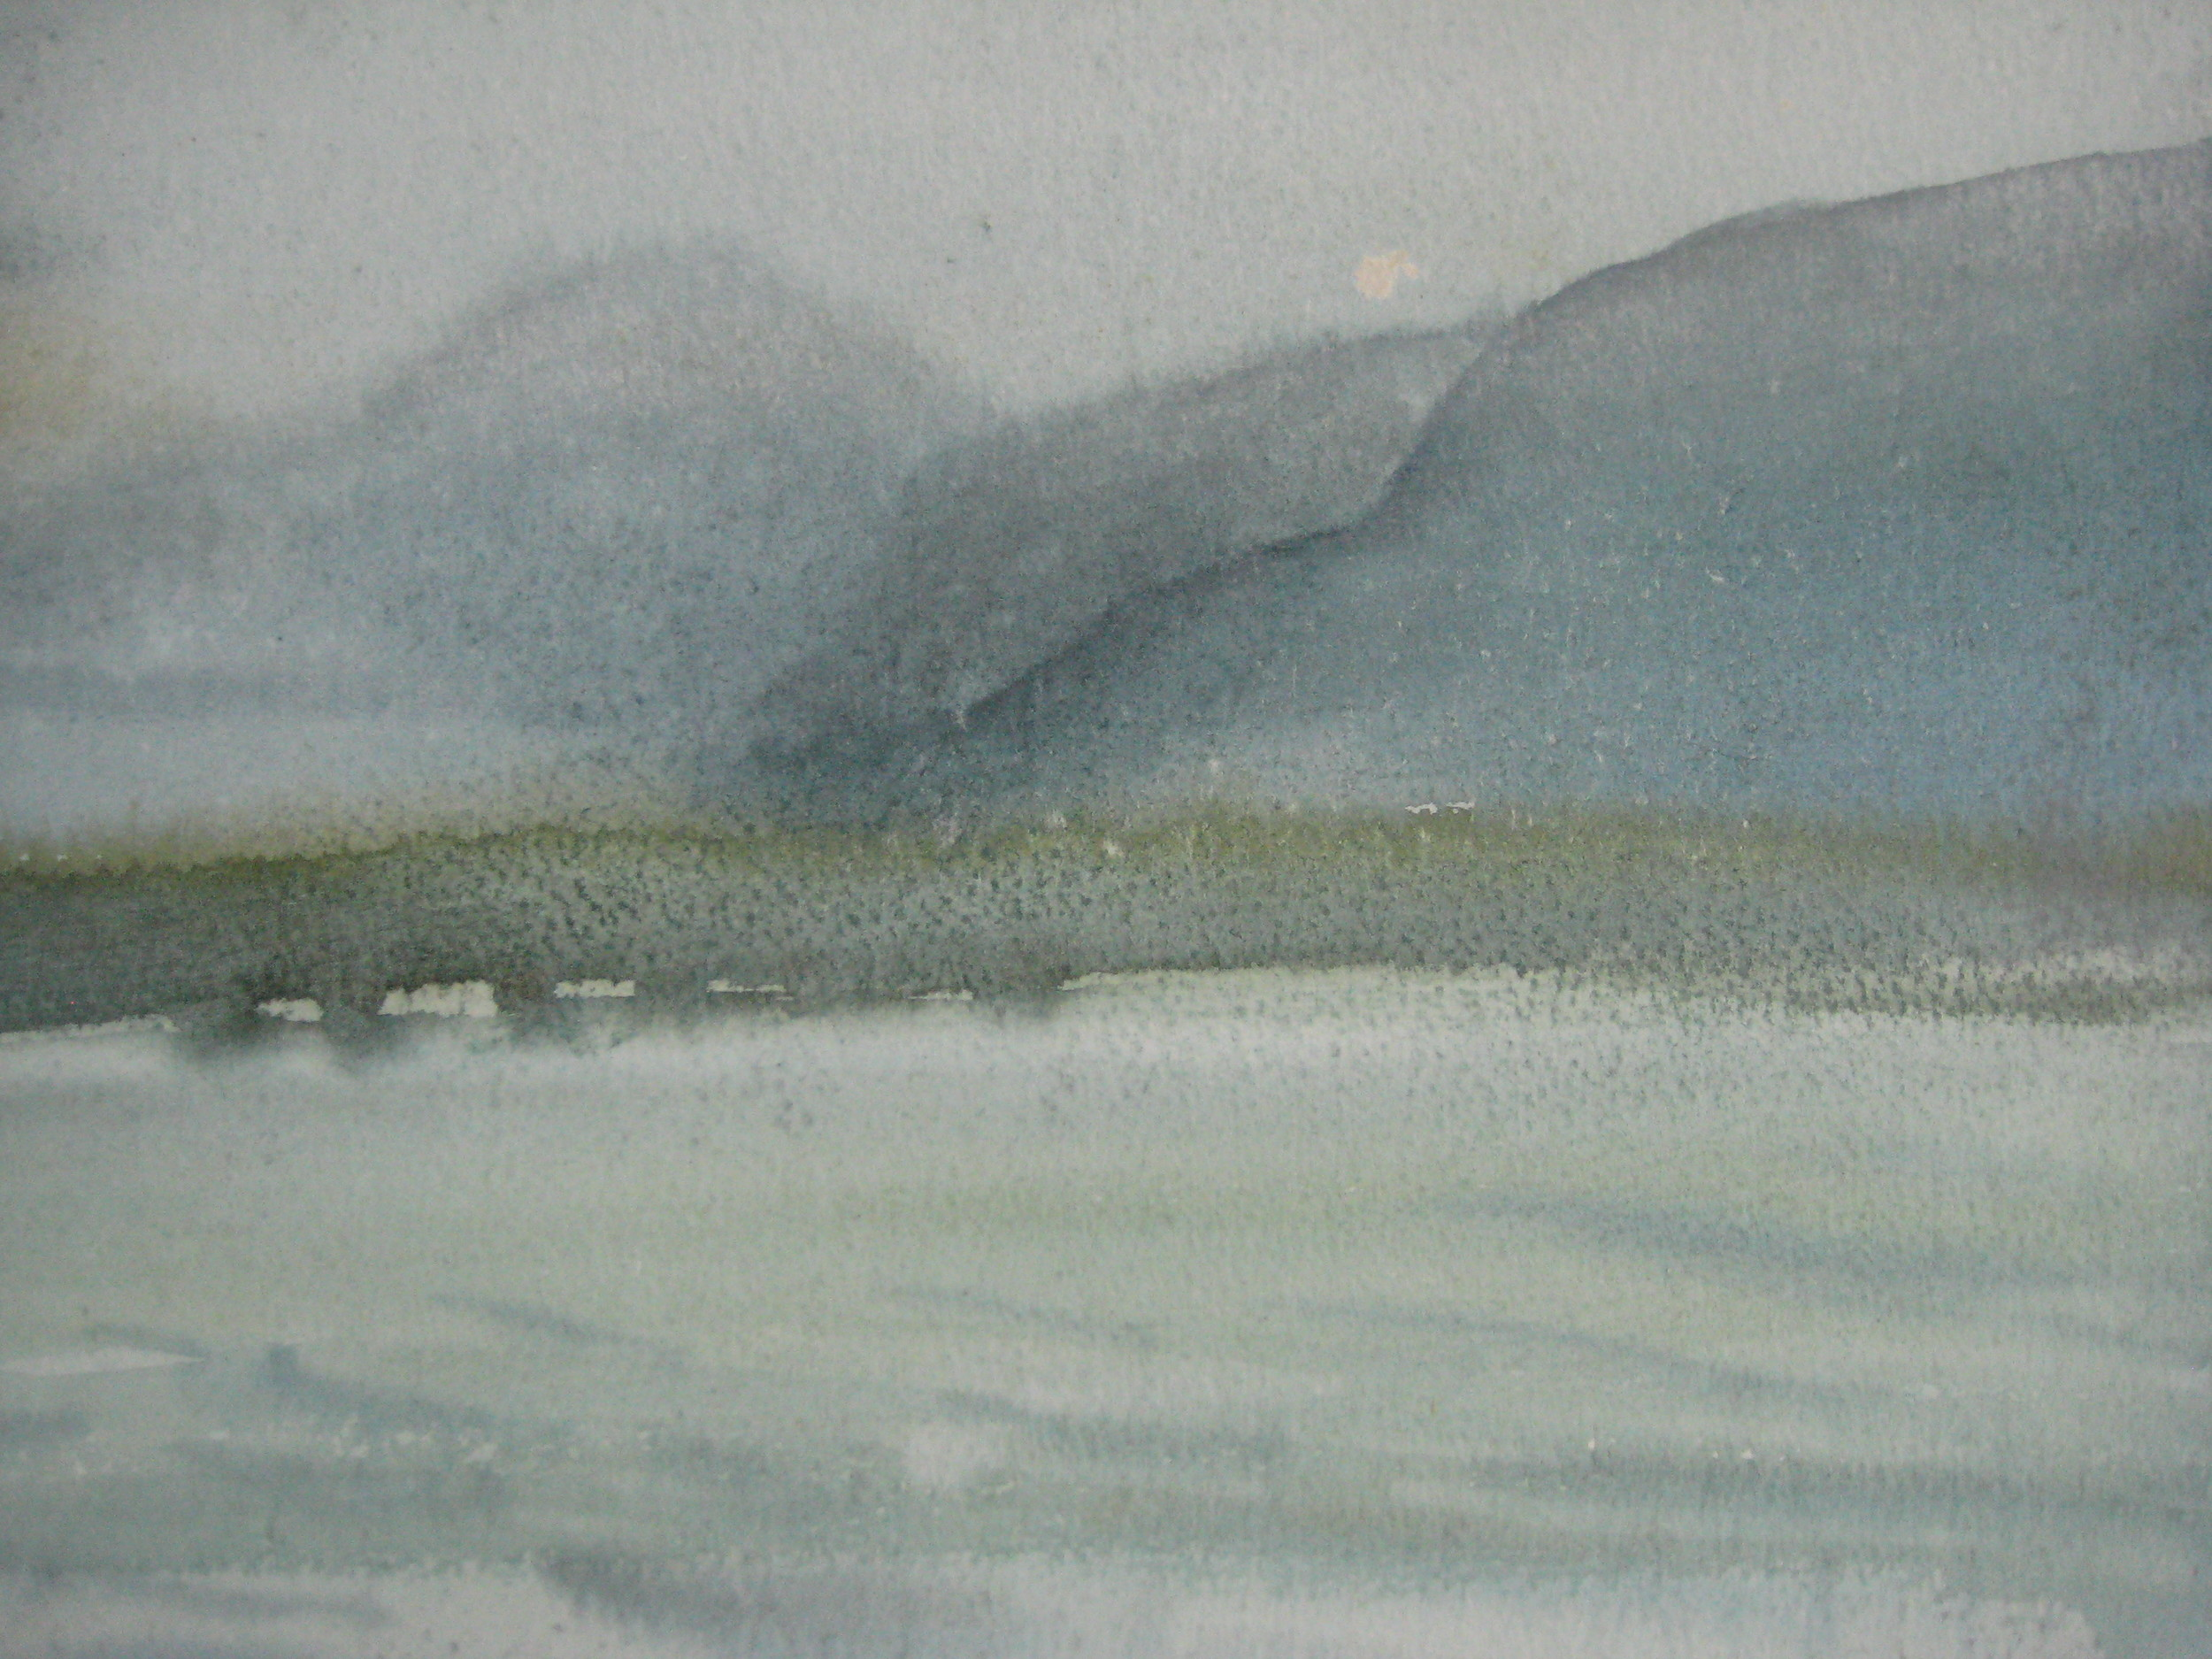 "NEAR BORGARNES, ICELAND, WET DAY  Approx 10X8.75"" (25X22cm)   Watercolour"